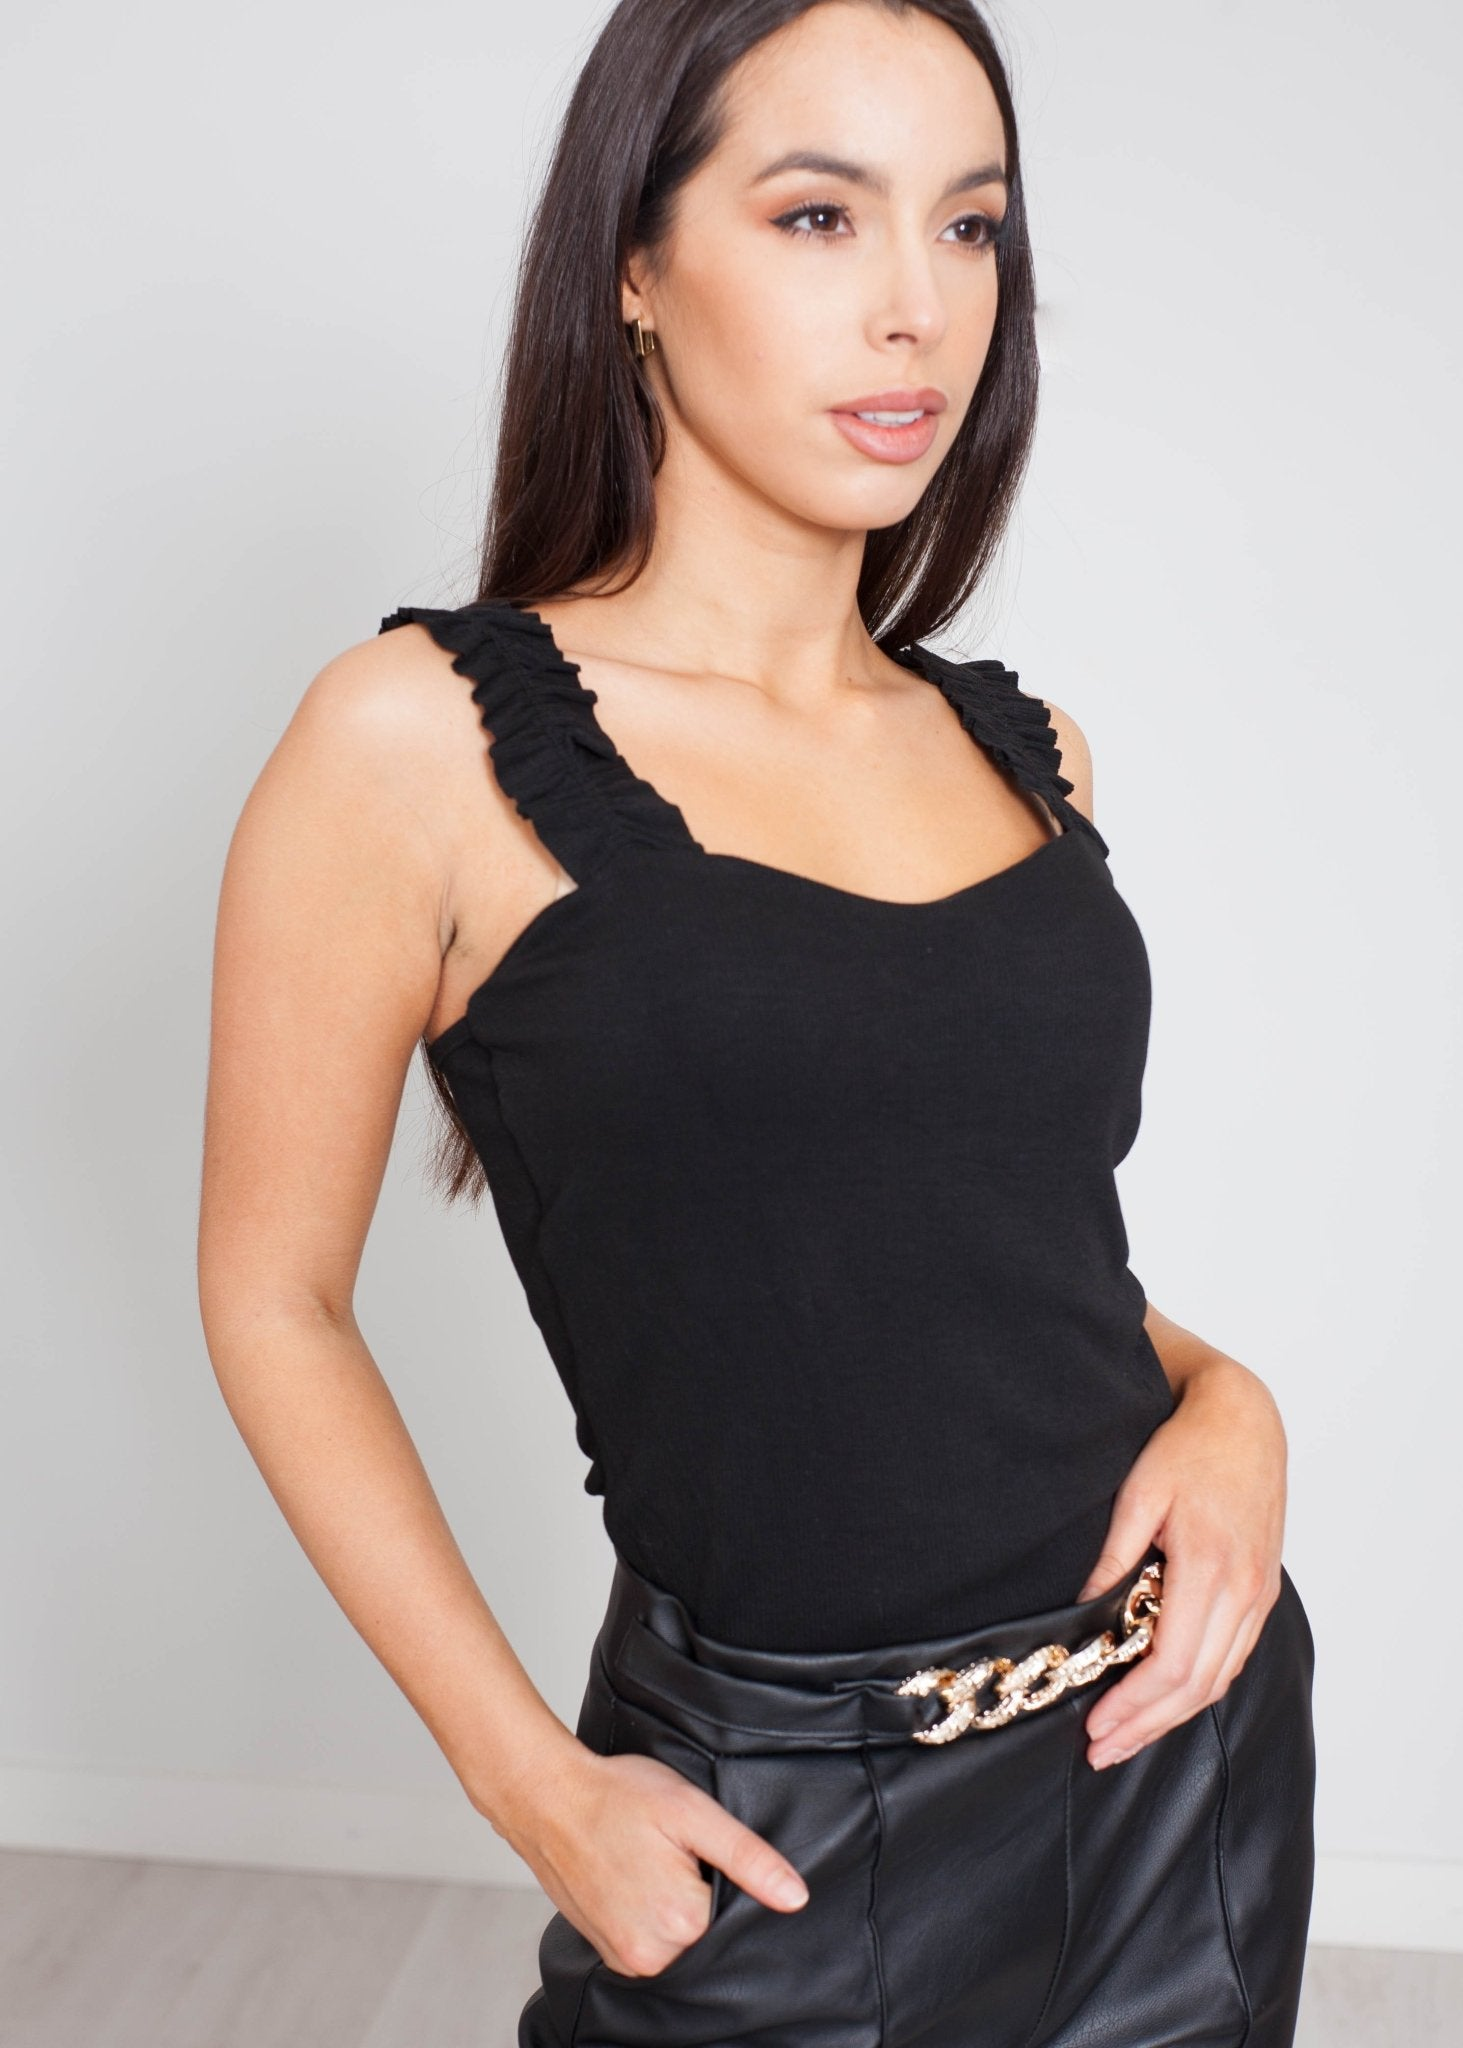 Priya Frill Bodysuit In Black - The Walk in Wardrobe